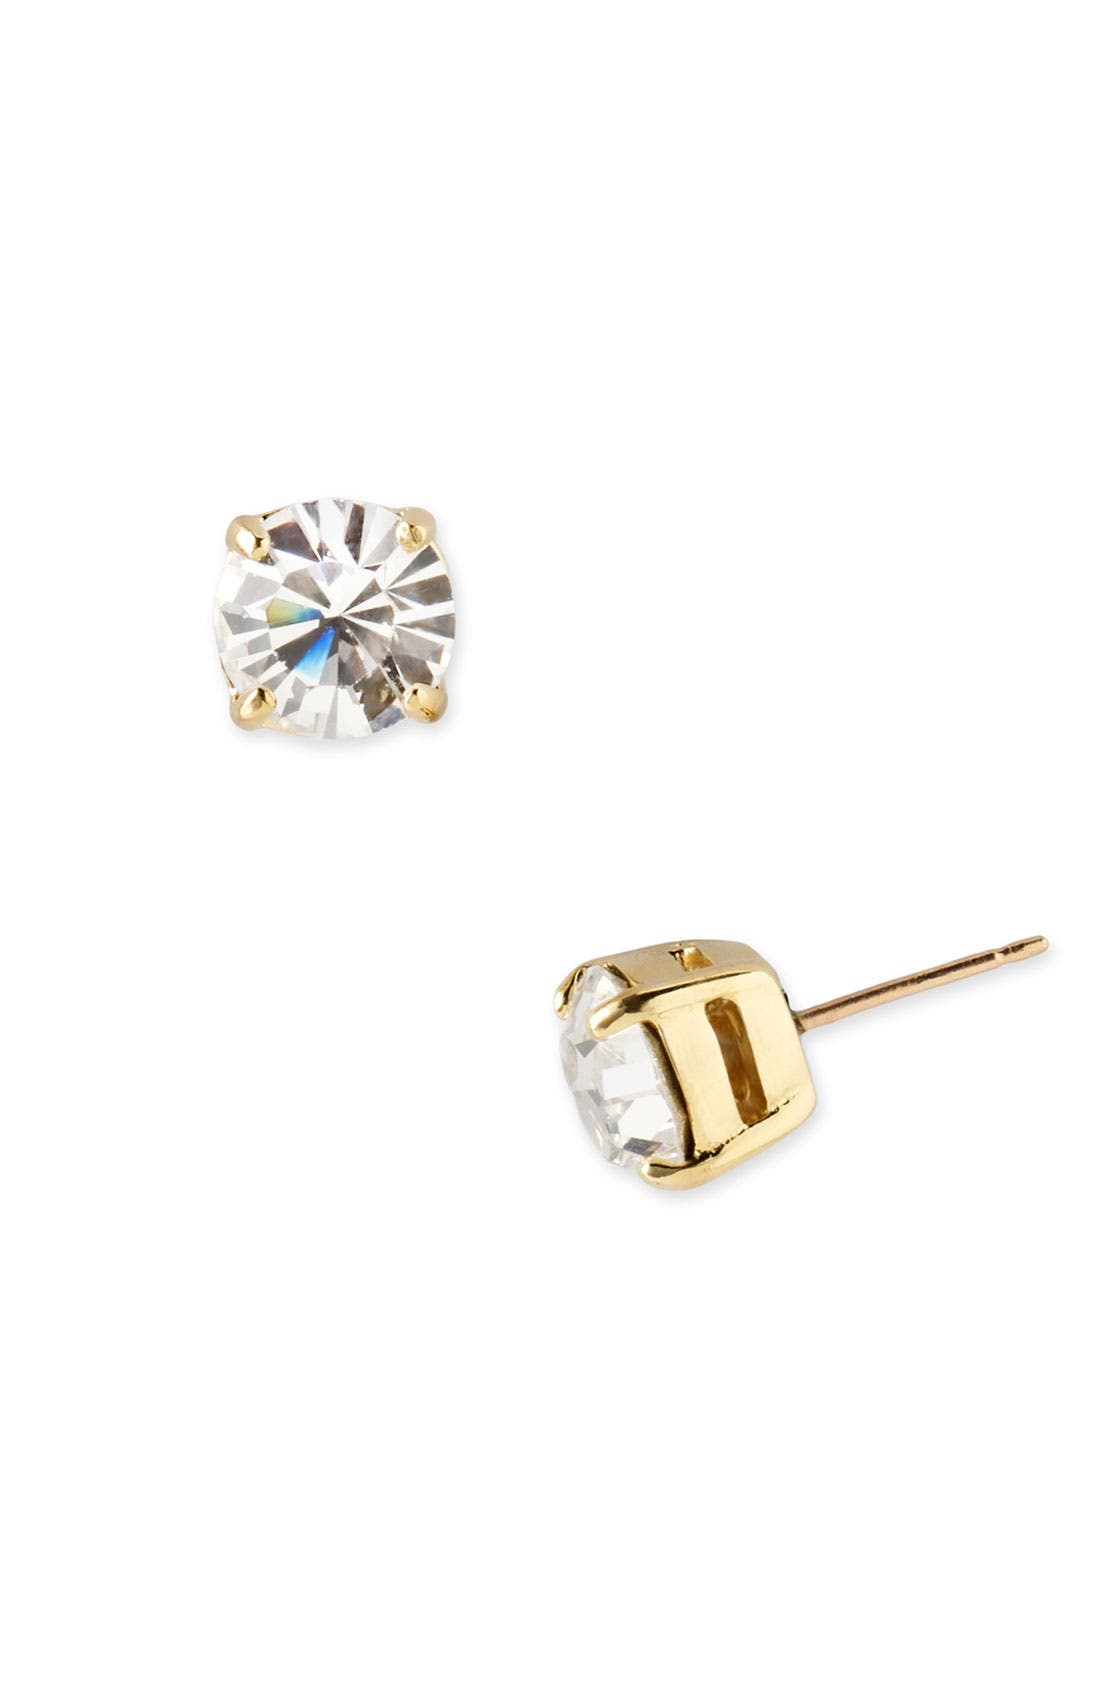 Alternate Image 1 Selected - kate spade new york 'cueva rosa' stud earrings